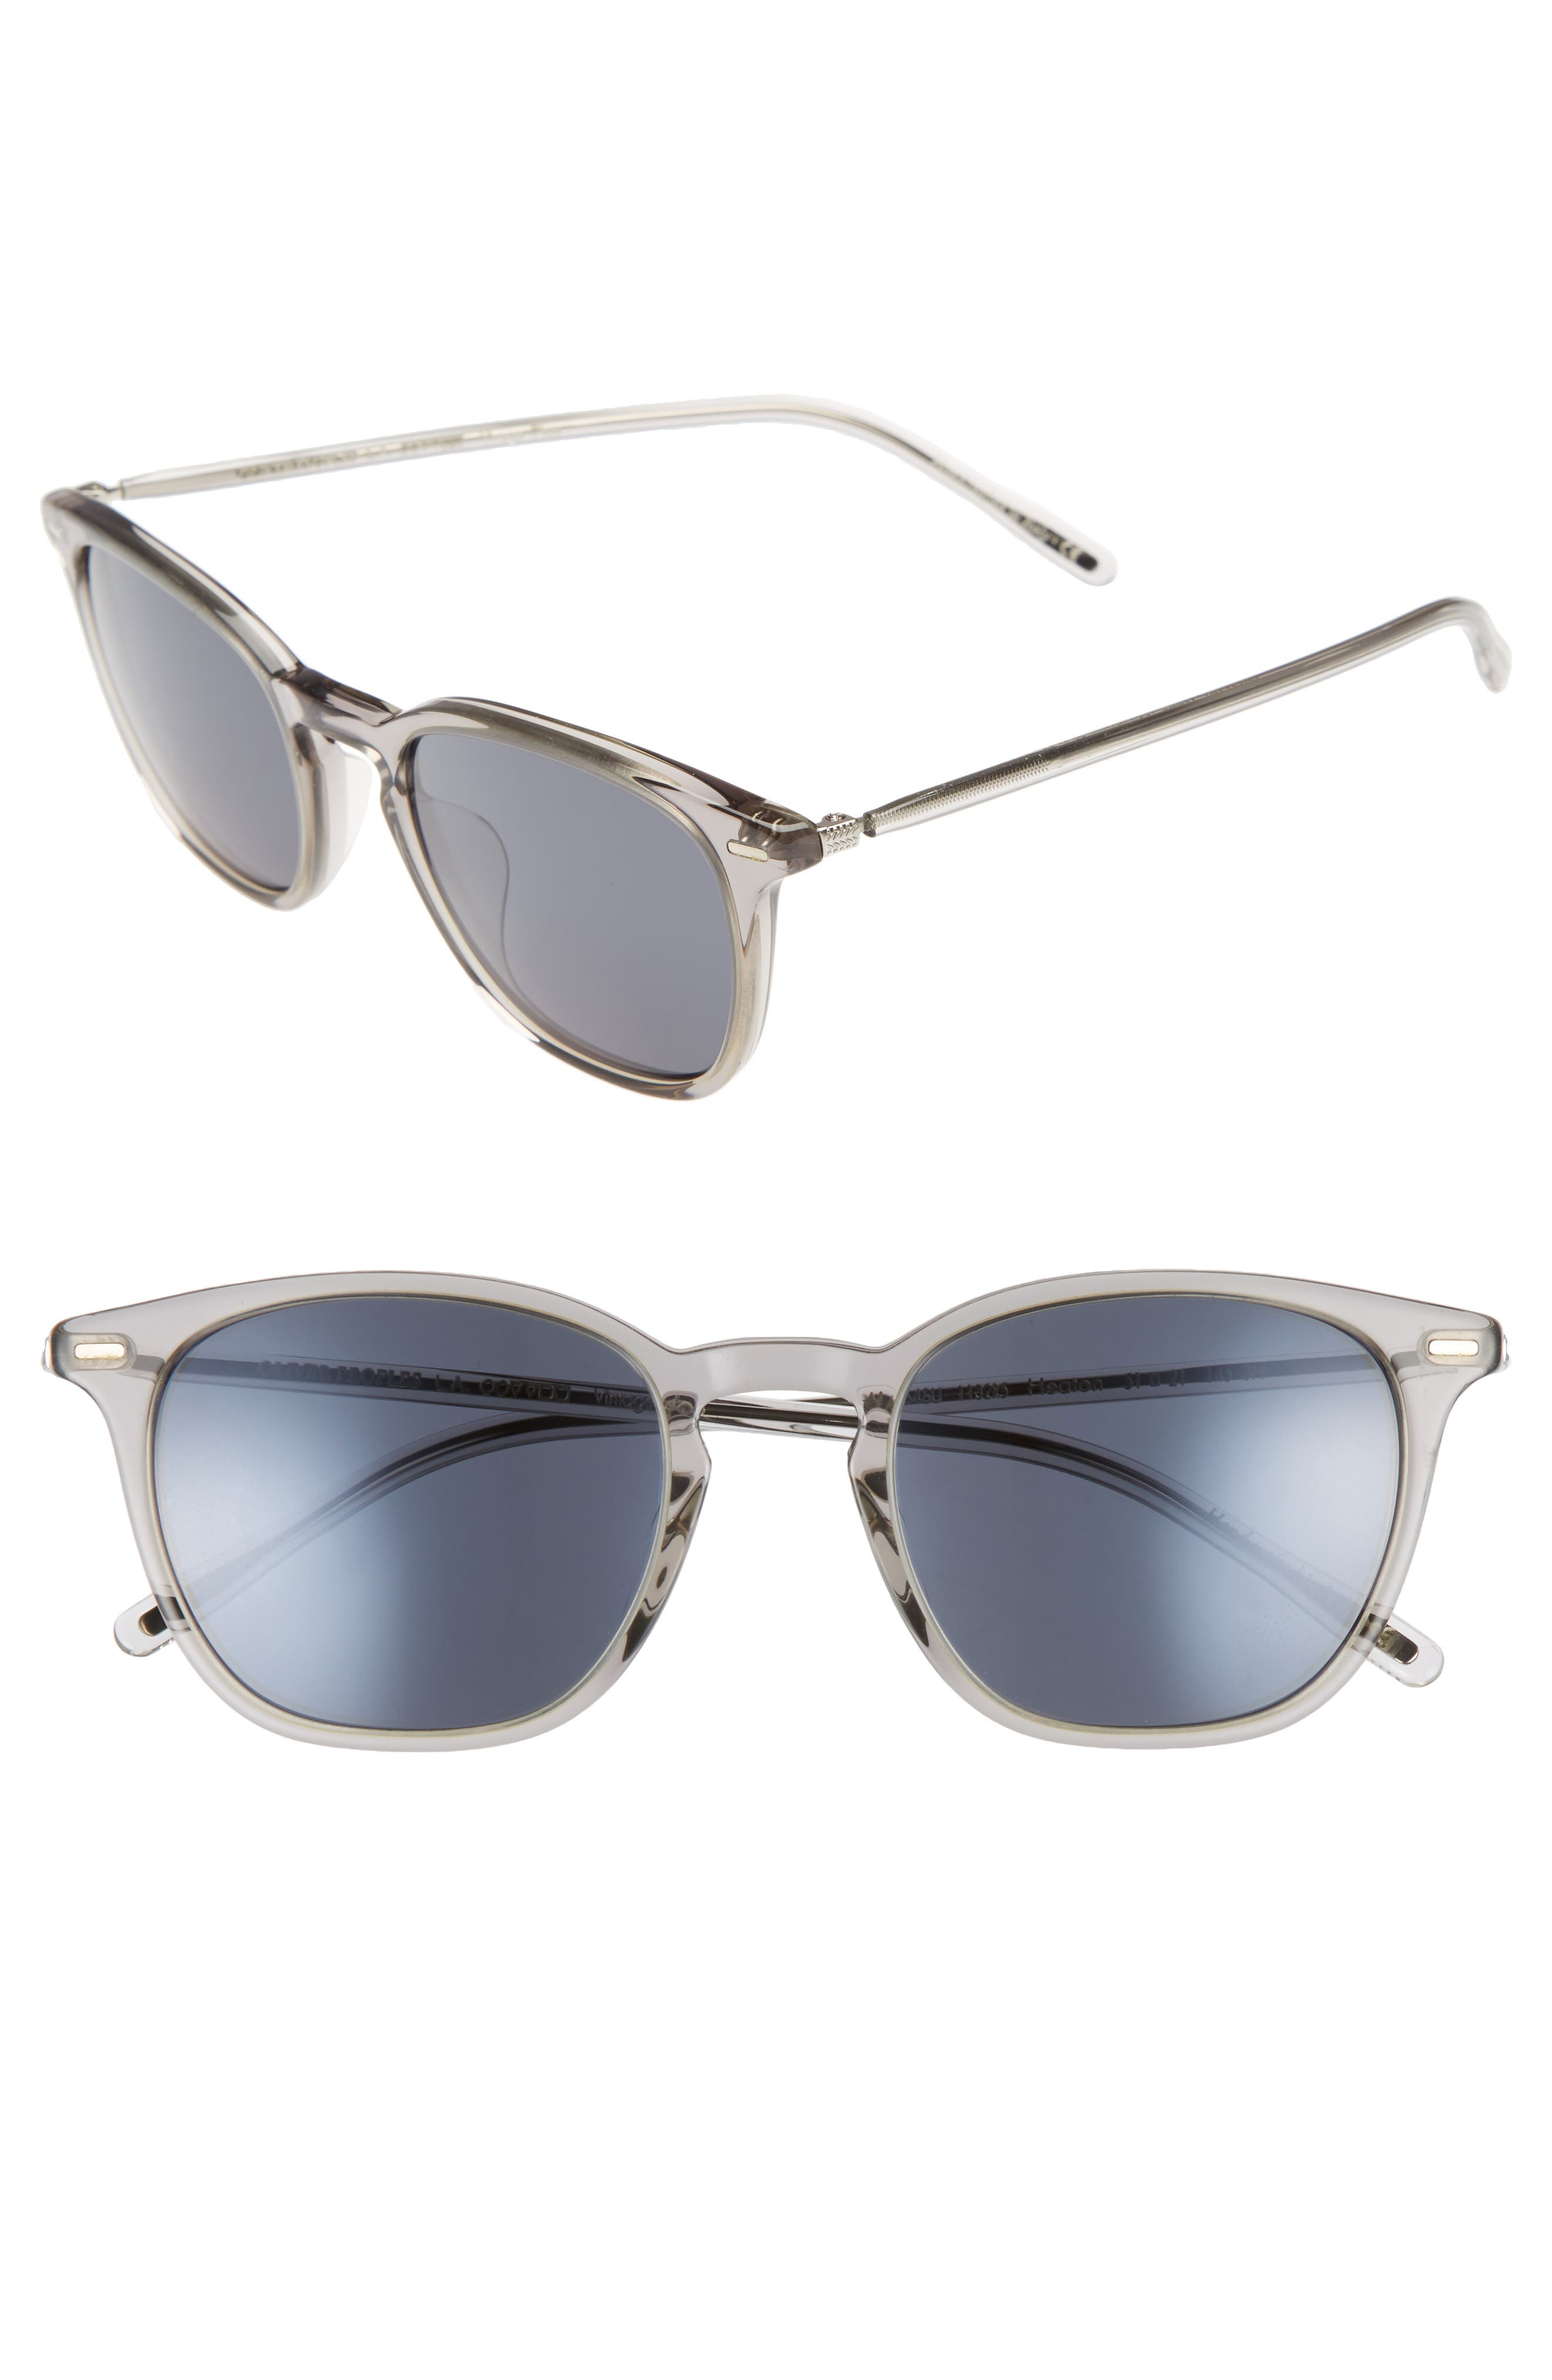 OLIVER PEOPLES,                             Heaton 51mm Sunglasses,                             Main thumbnail 1, color,                             022